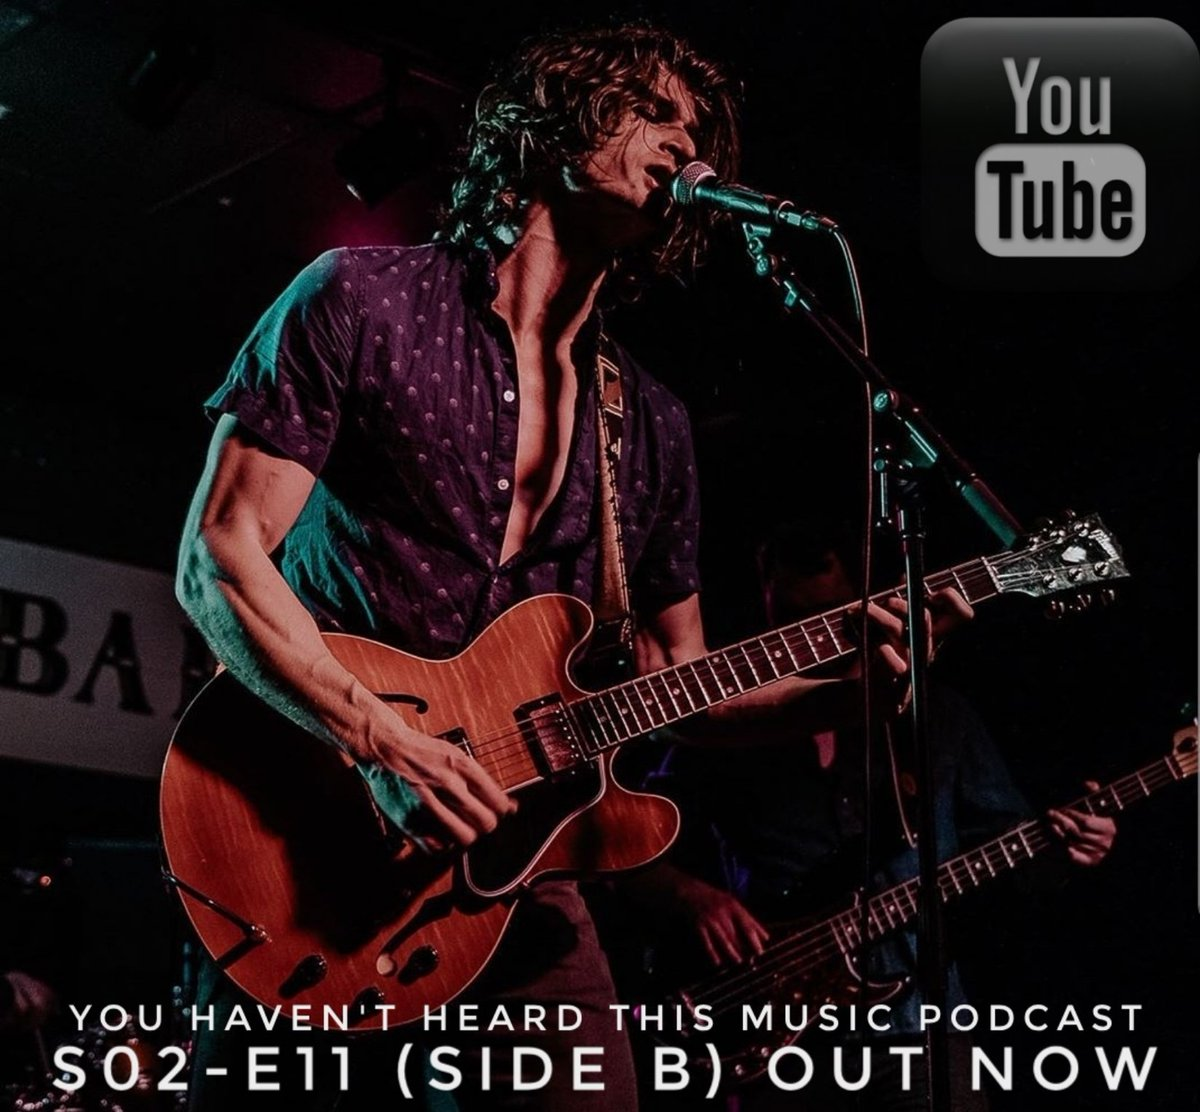 S02-E11 (Side B)OUT NOW  On all major platforms including  #np #YouTube  Link: https://sites.google.com/yhhtmpc.com/podcast/links…  Featuring music and chats from @lizibailey @itskatherinealy @jonworthymusic @victoriaaz__ @JoyViewOfficial  #NewMusic #podcast #podcasting #musicpodcast #SoundCloud #love